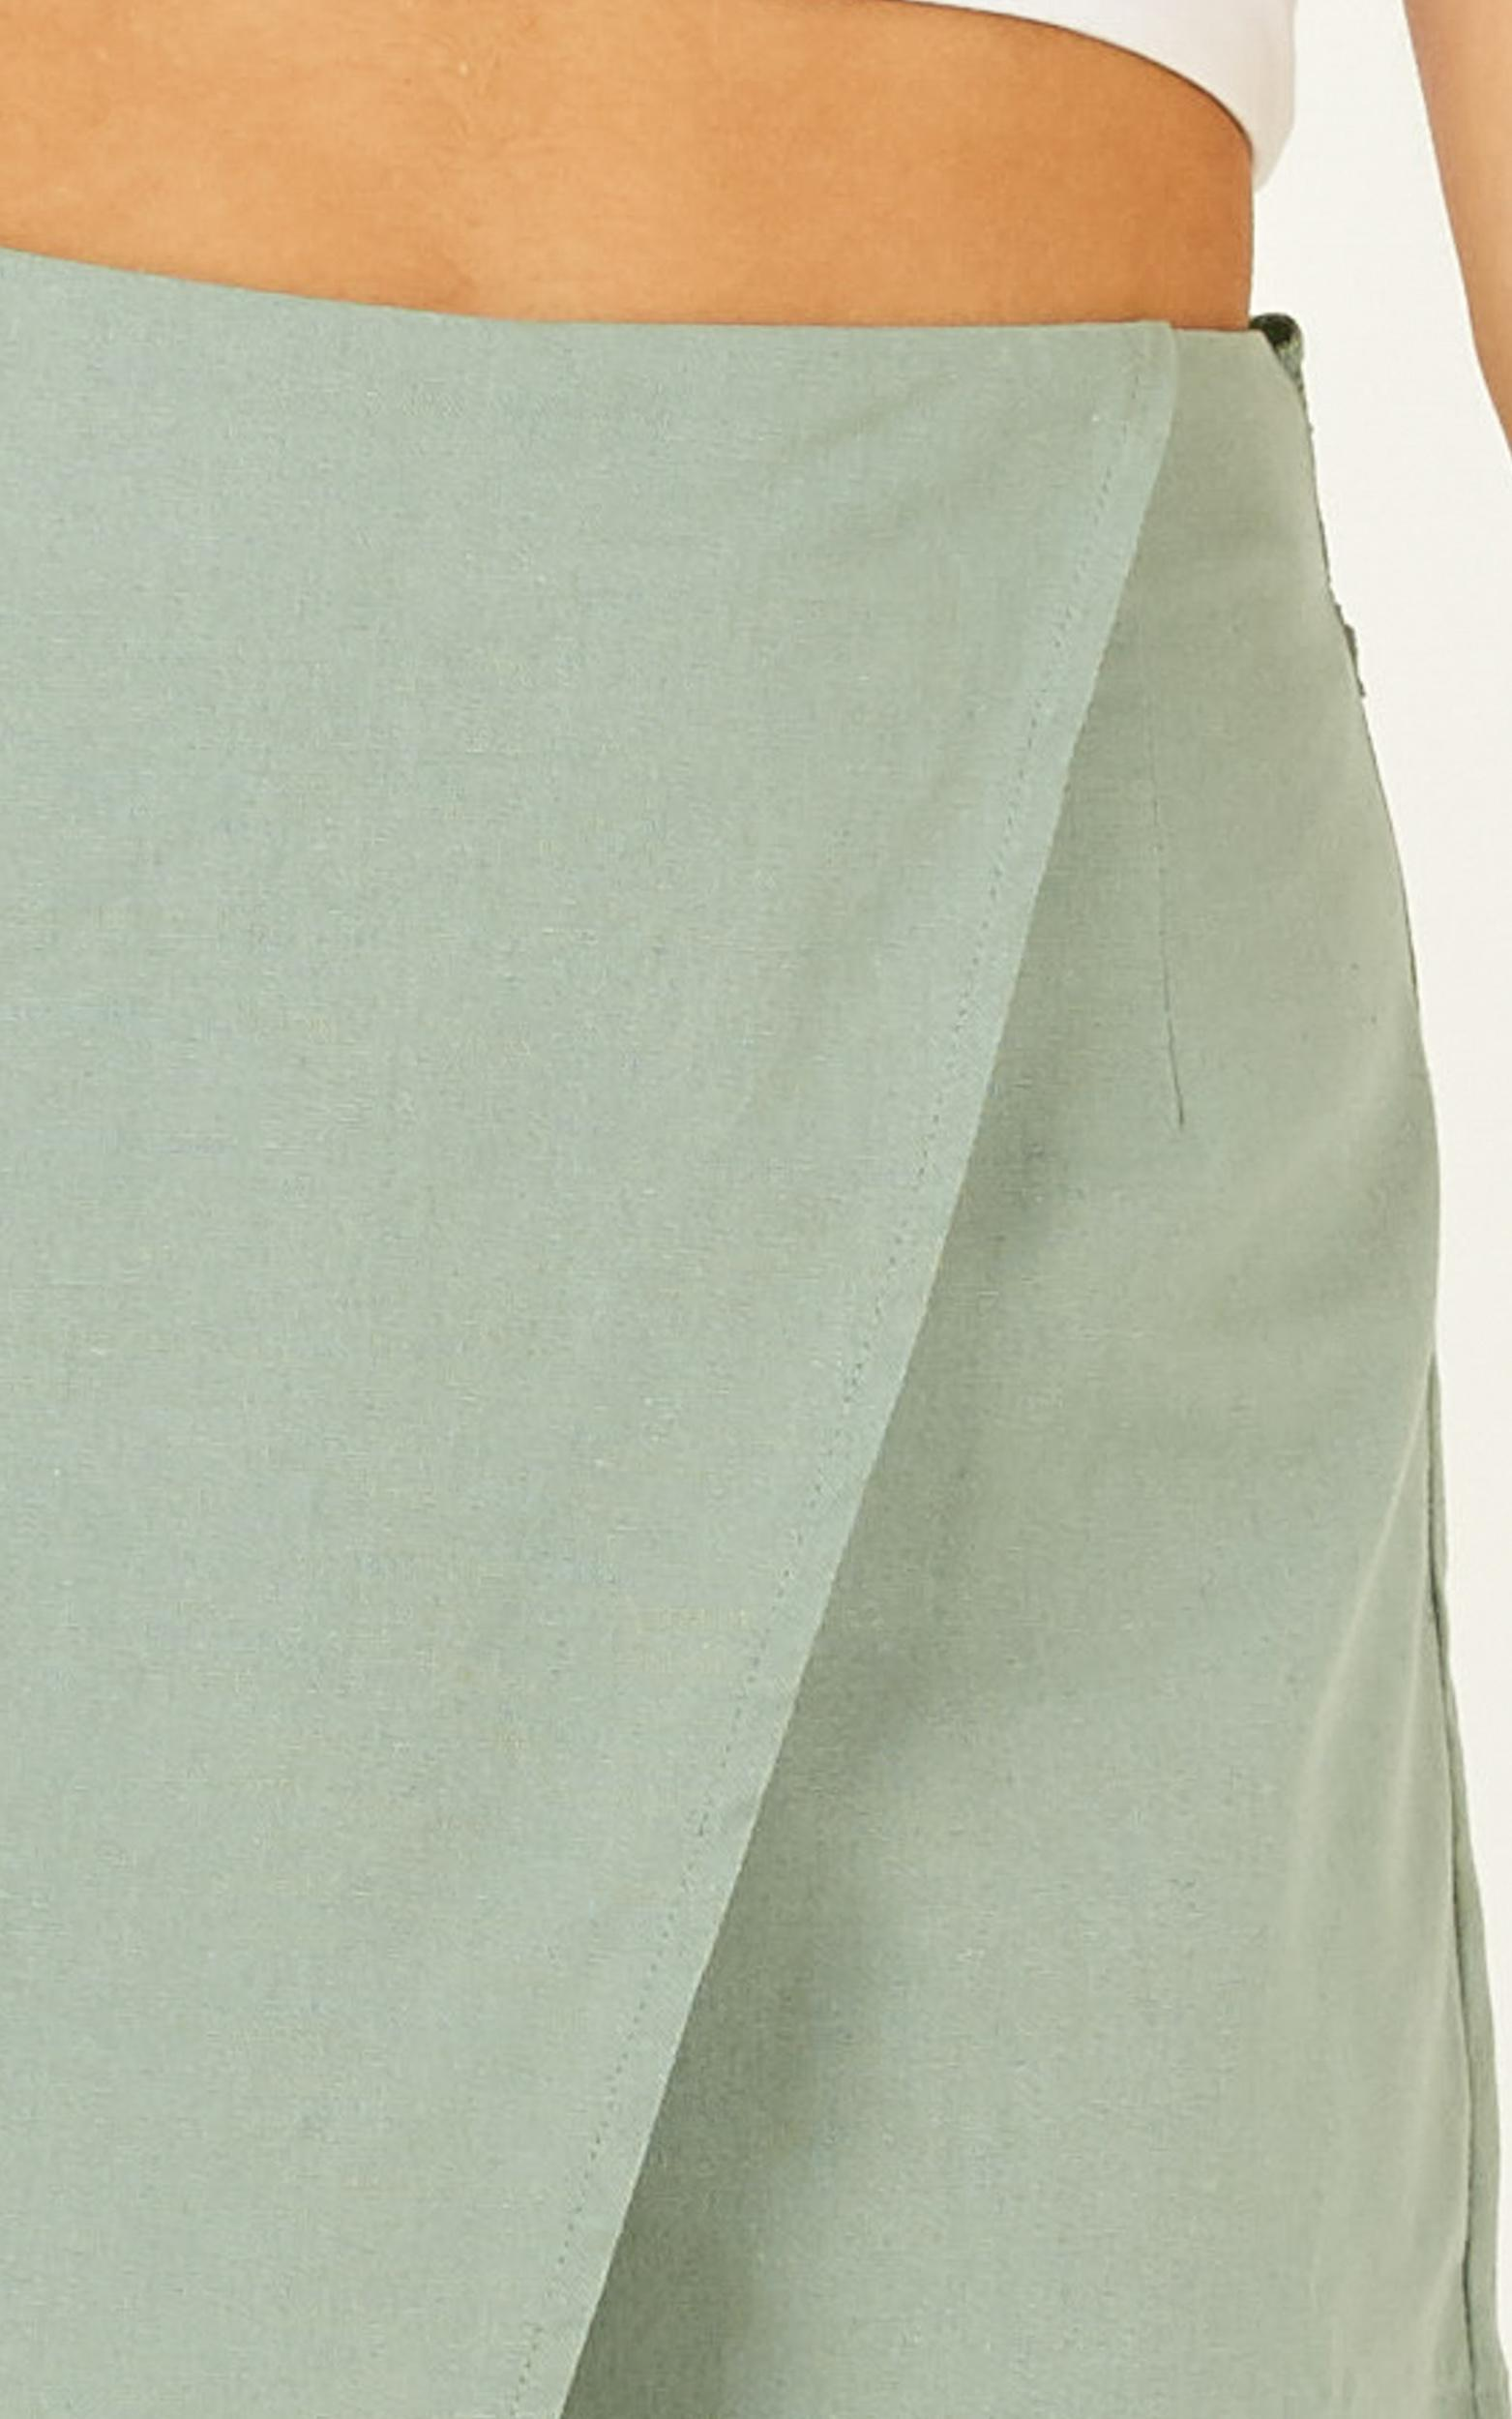 Meet Your Maker Skort in sage linen look - 14 (XL), Sage, hi-res image number null